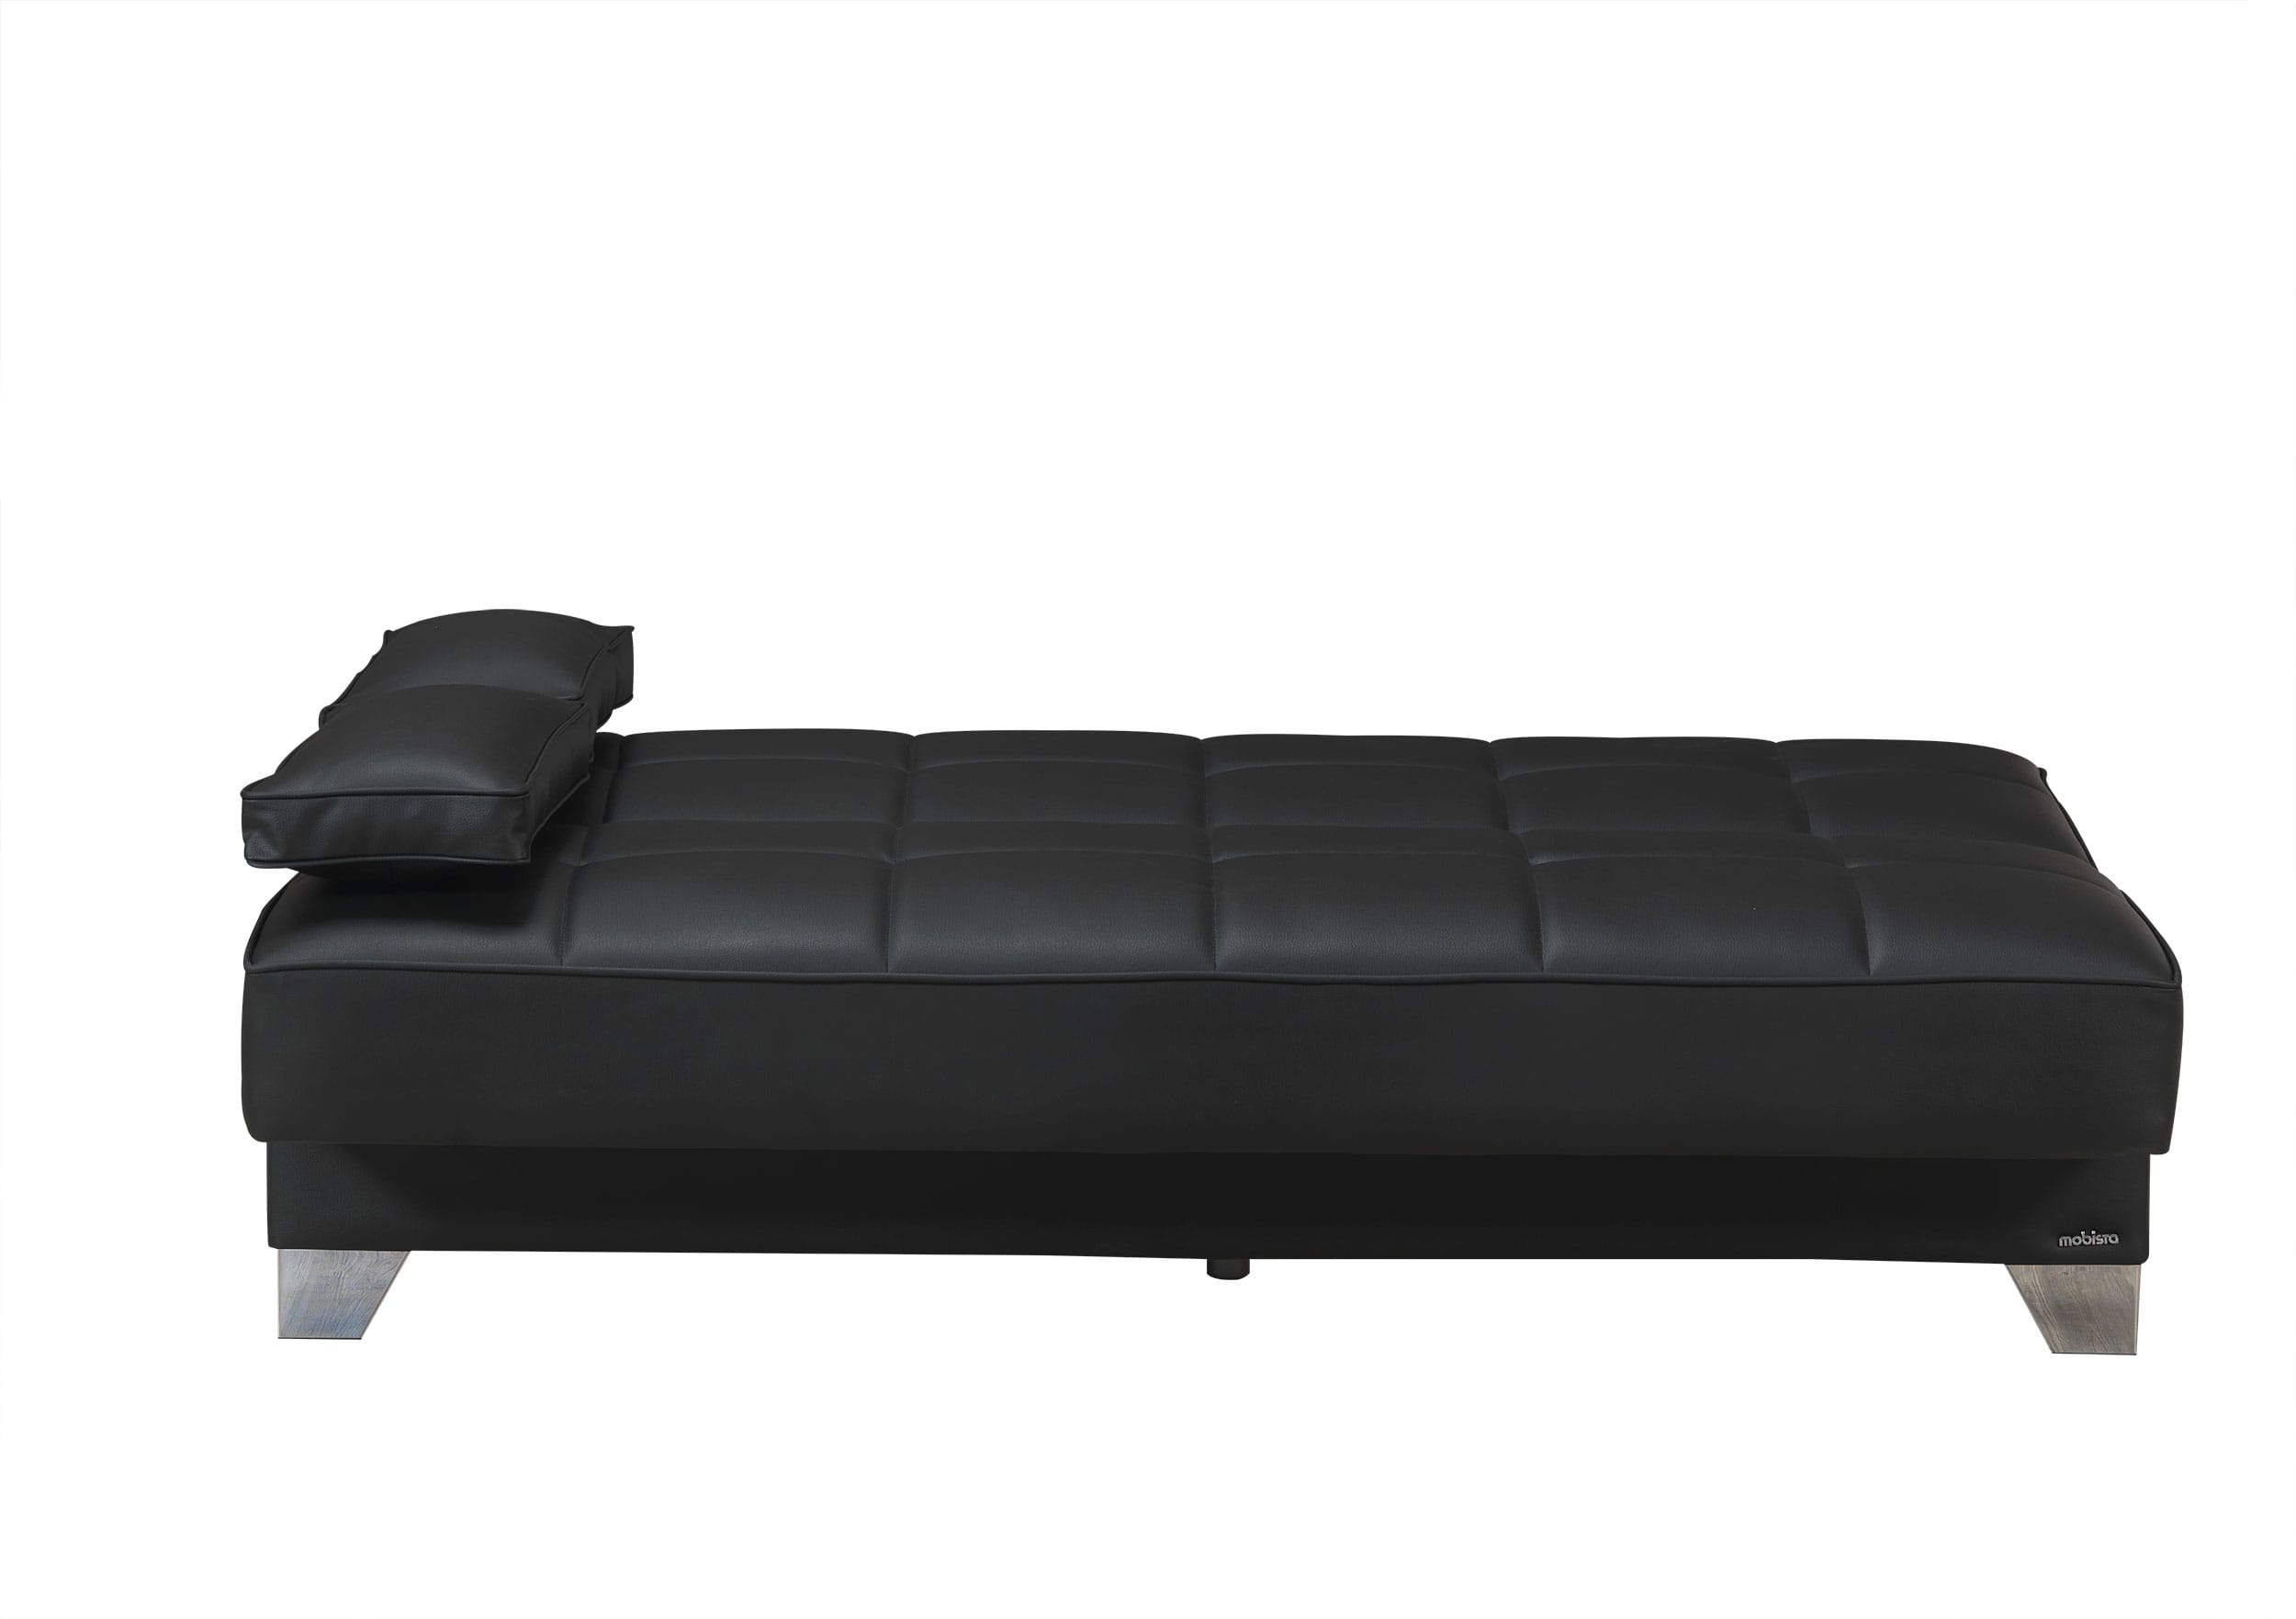 Sofa Beds Nyc Gorgeous Modern Sofa Bed Nyc Furniture Black Leather Sectional Thesofa